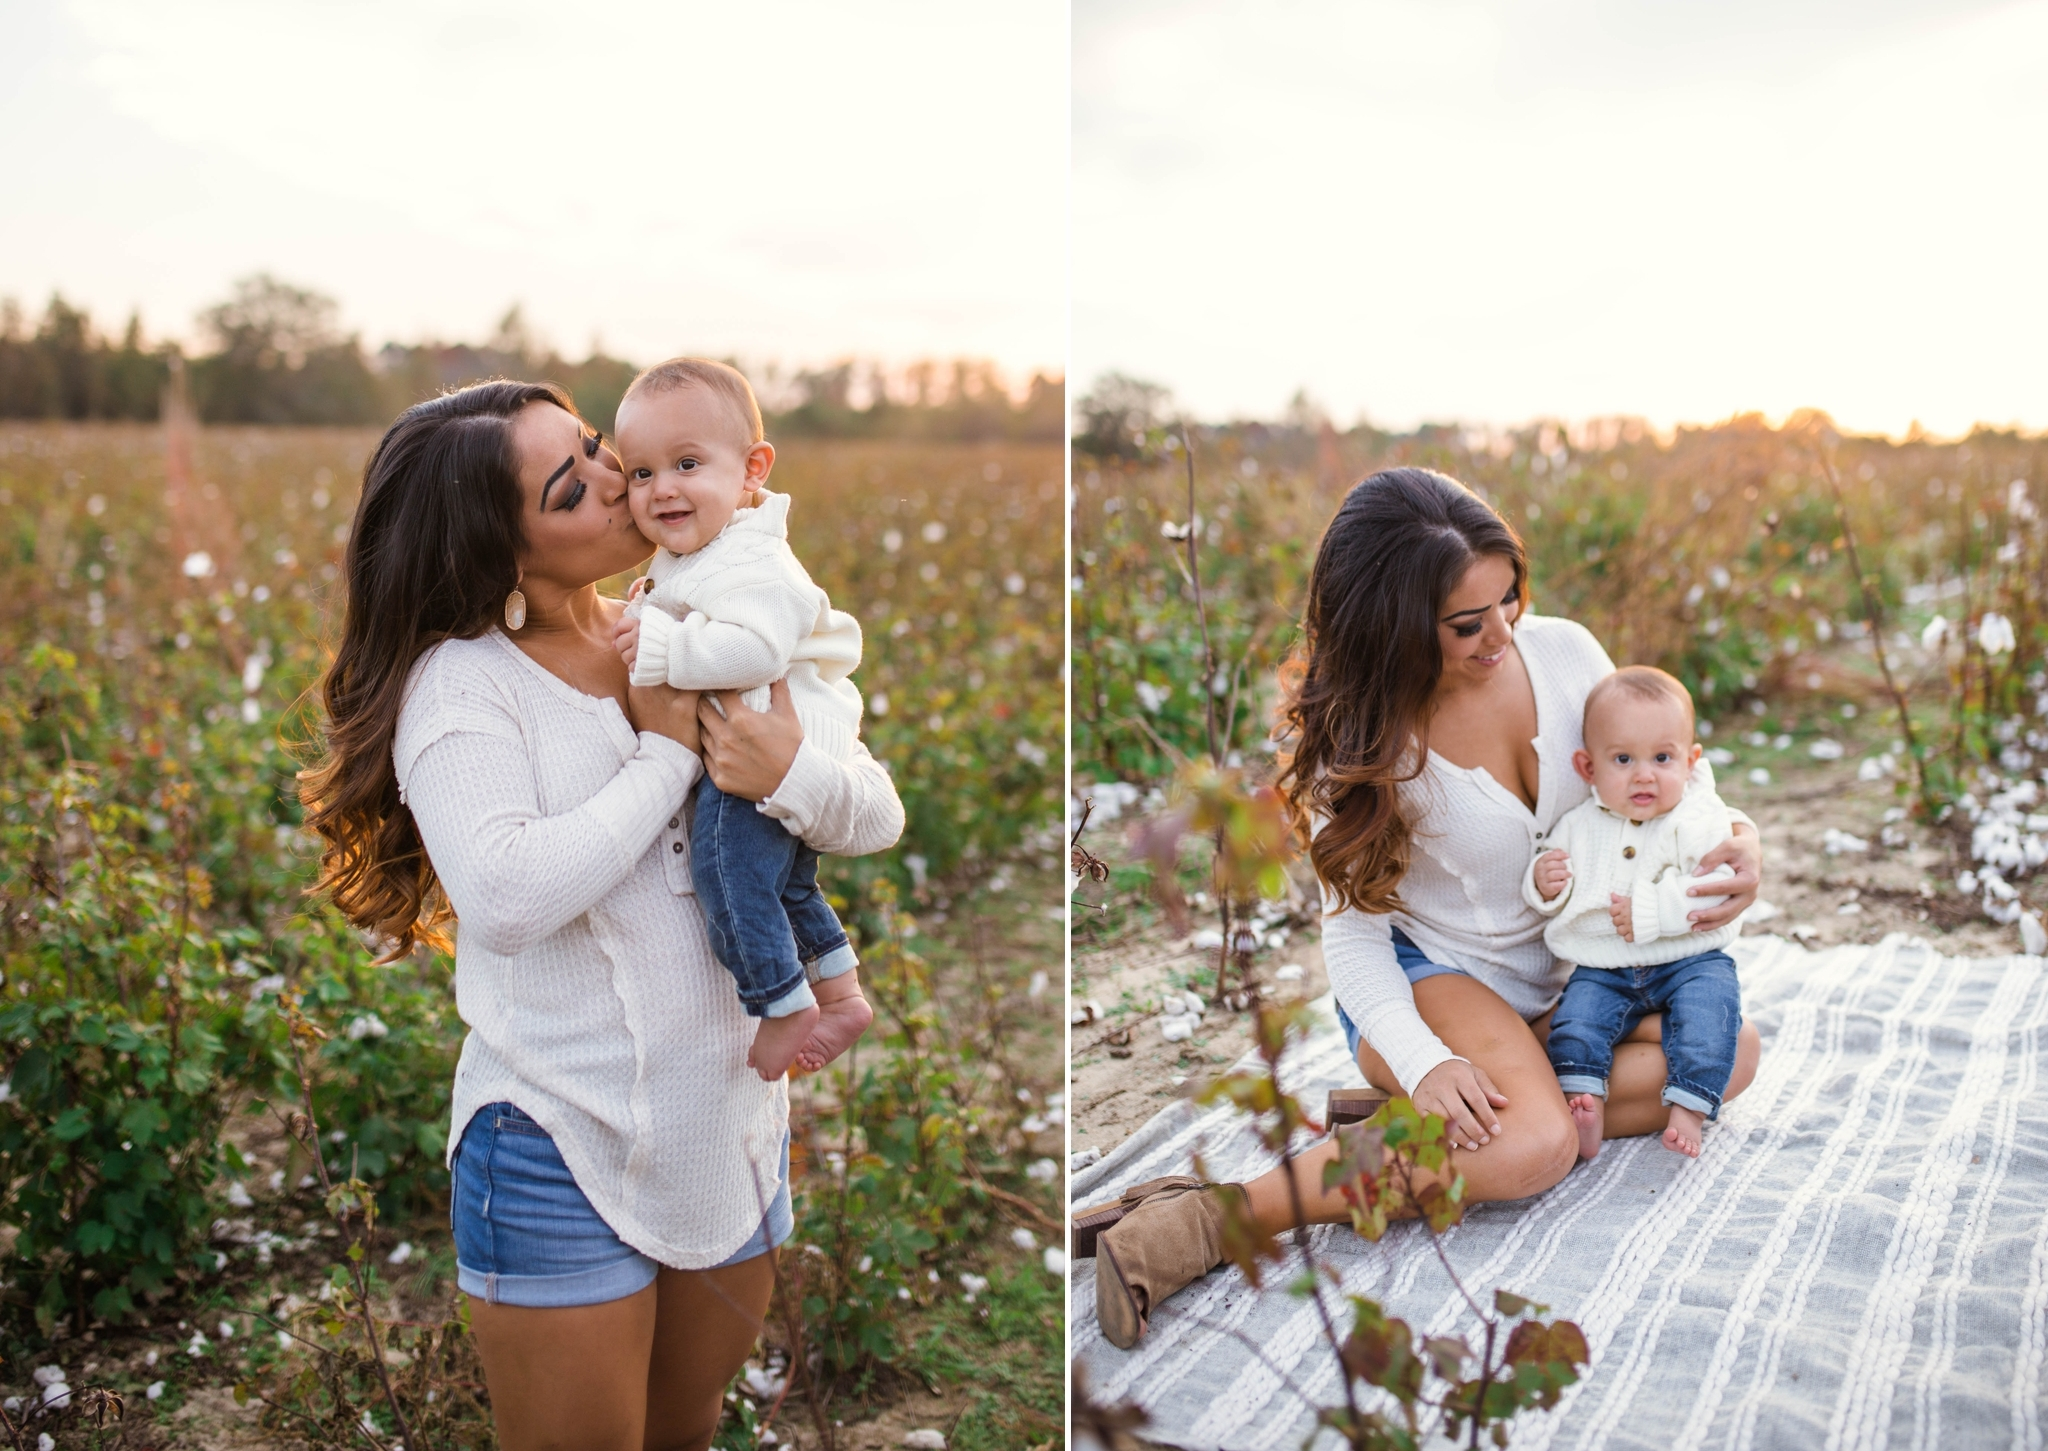 Outfit Ideas Tips For Your Fall Family Pictures Fayetteville Nc Photographer Elopement Engagement Family Photographers In Oahu Hawaii Johanna Dye Photography